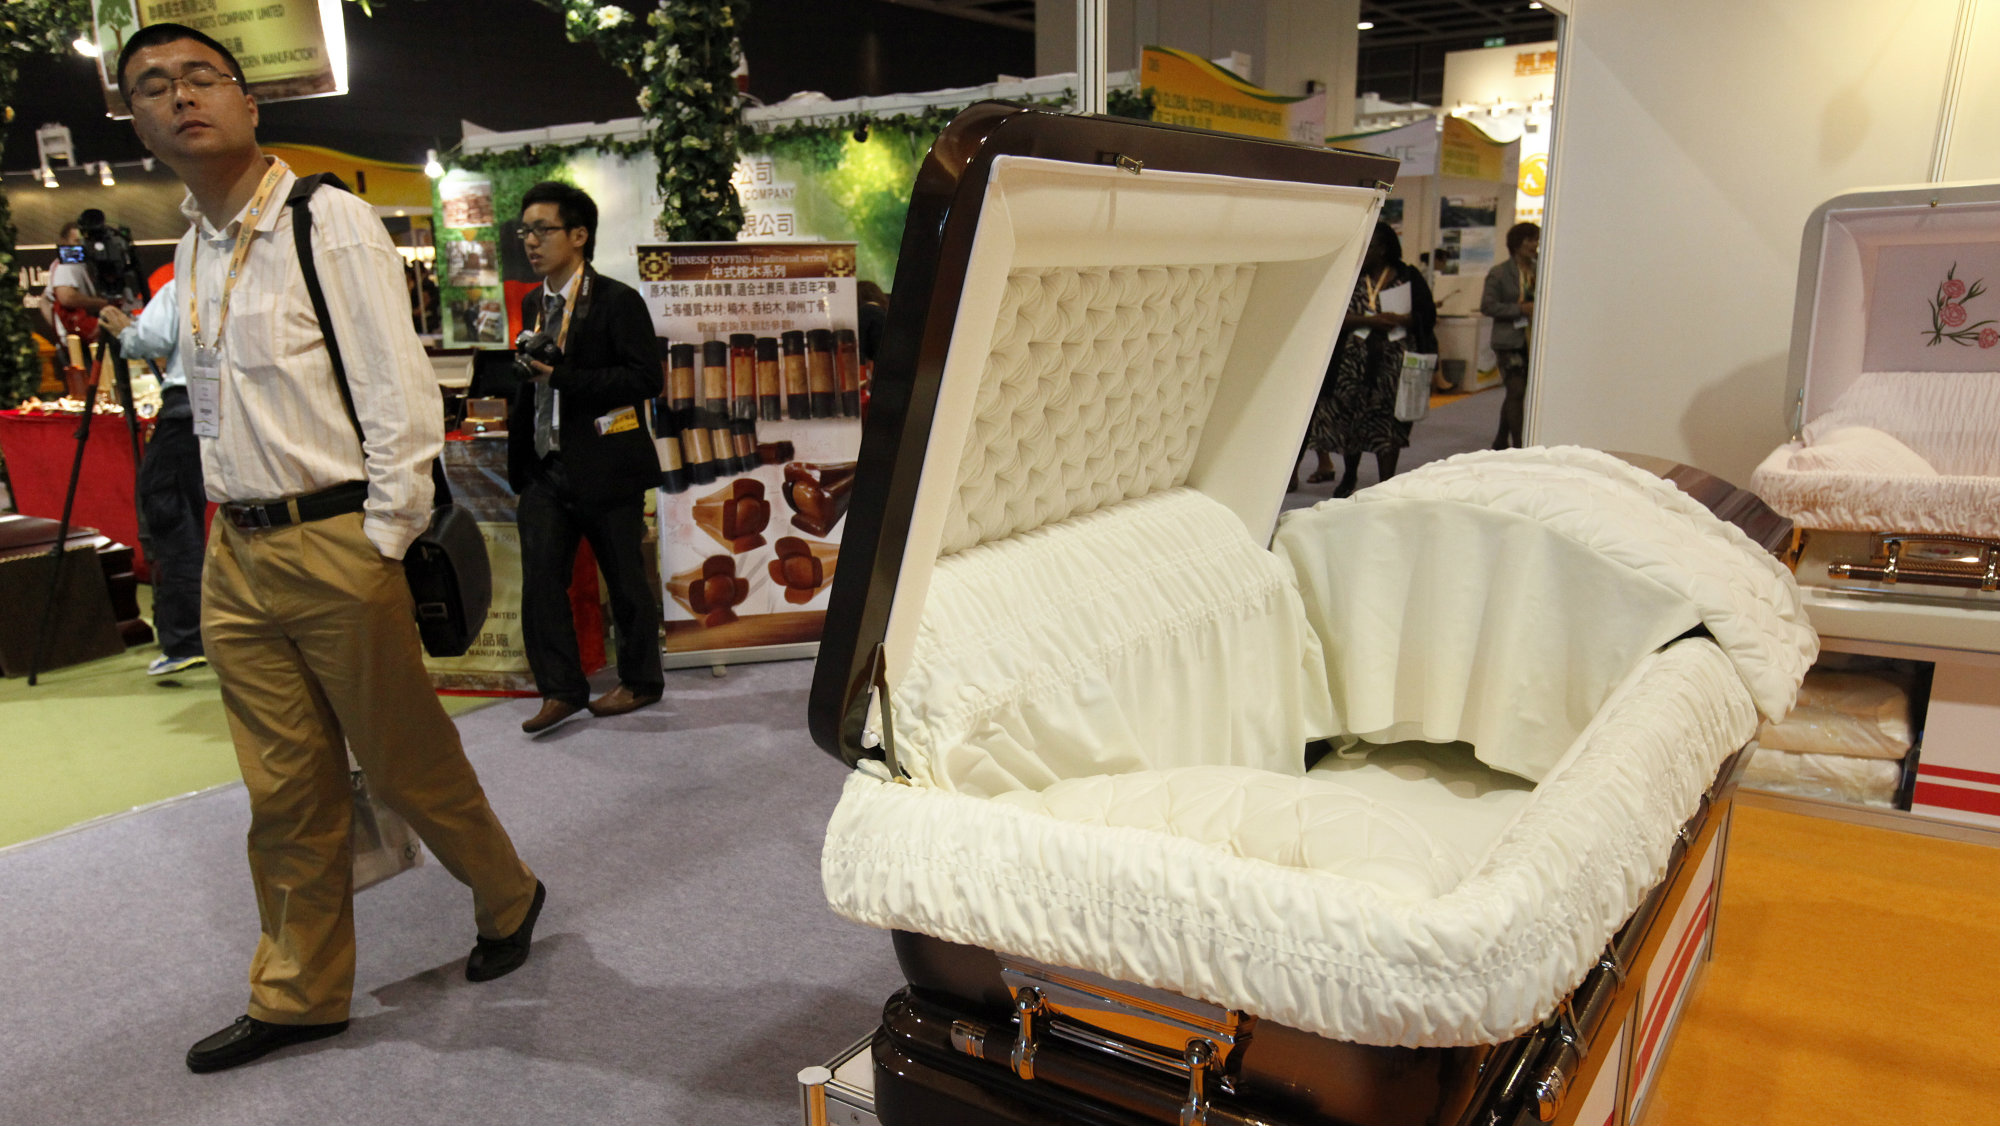 A open coffin is presented at the 'Asia Funeral Expo 2011' in Hong Kong, China, on 19 May 2011.